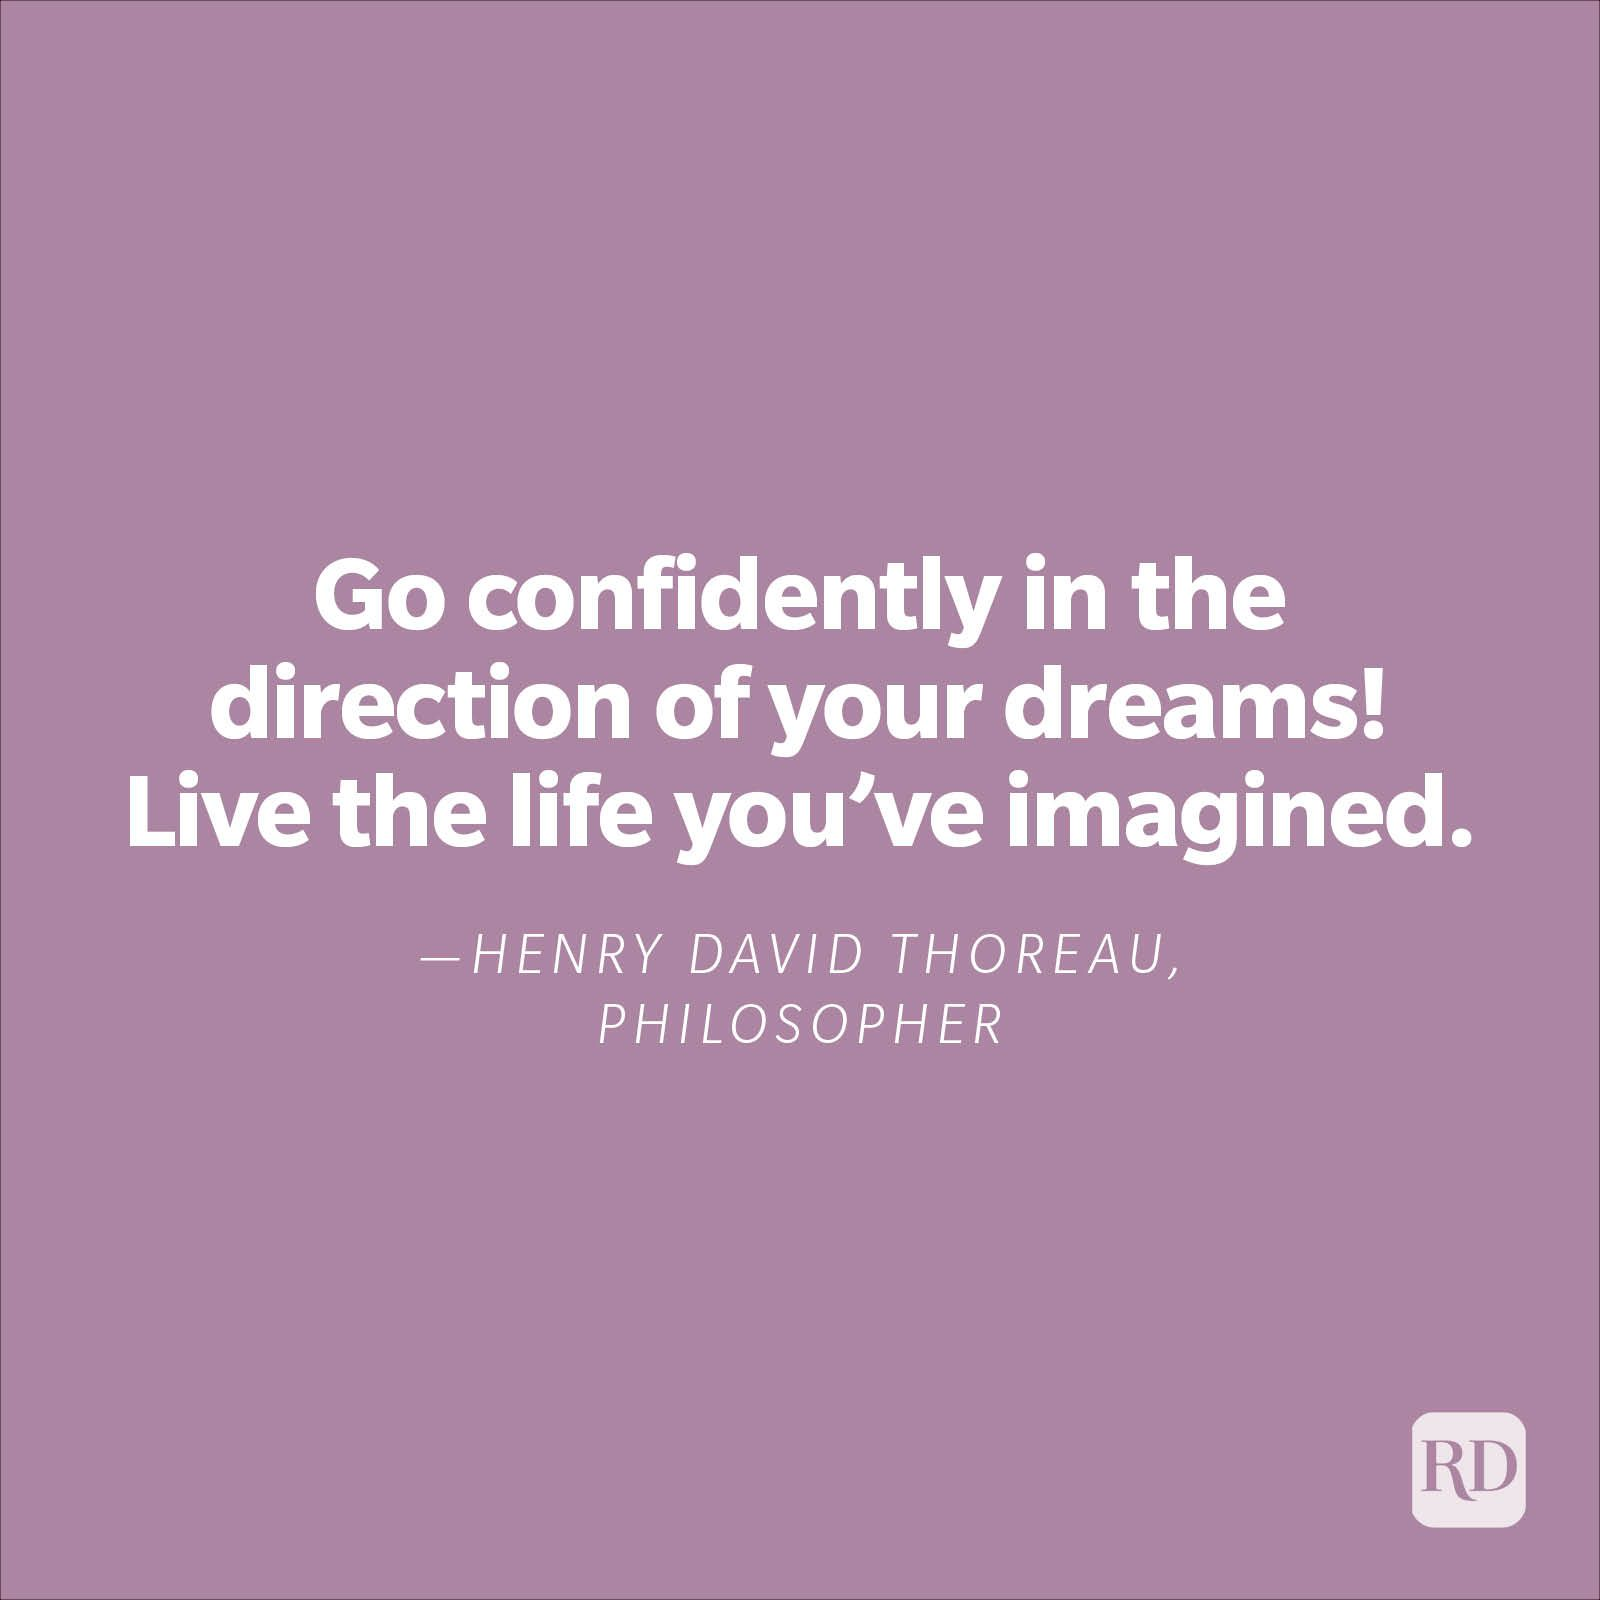 """""""Go confidently in the direction of your dreams! Live the life you've imagined."""" —Henry David Thoreau, philosopher"""